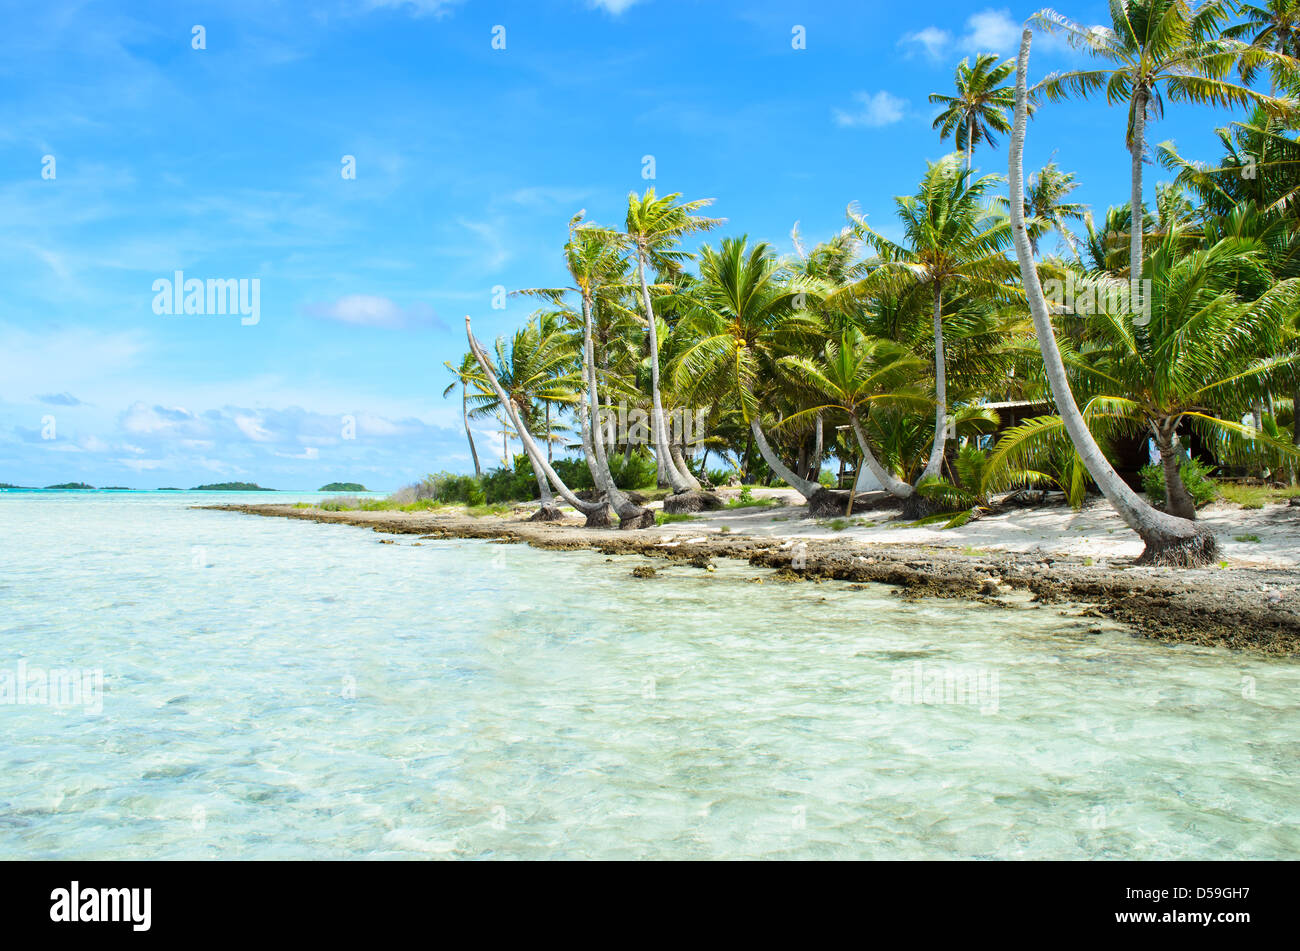 Coconut palms on the beach of a desert island near Tahiti in French Polynesia in the pacific ocean. - Stock Image